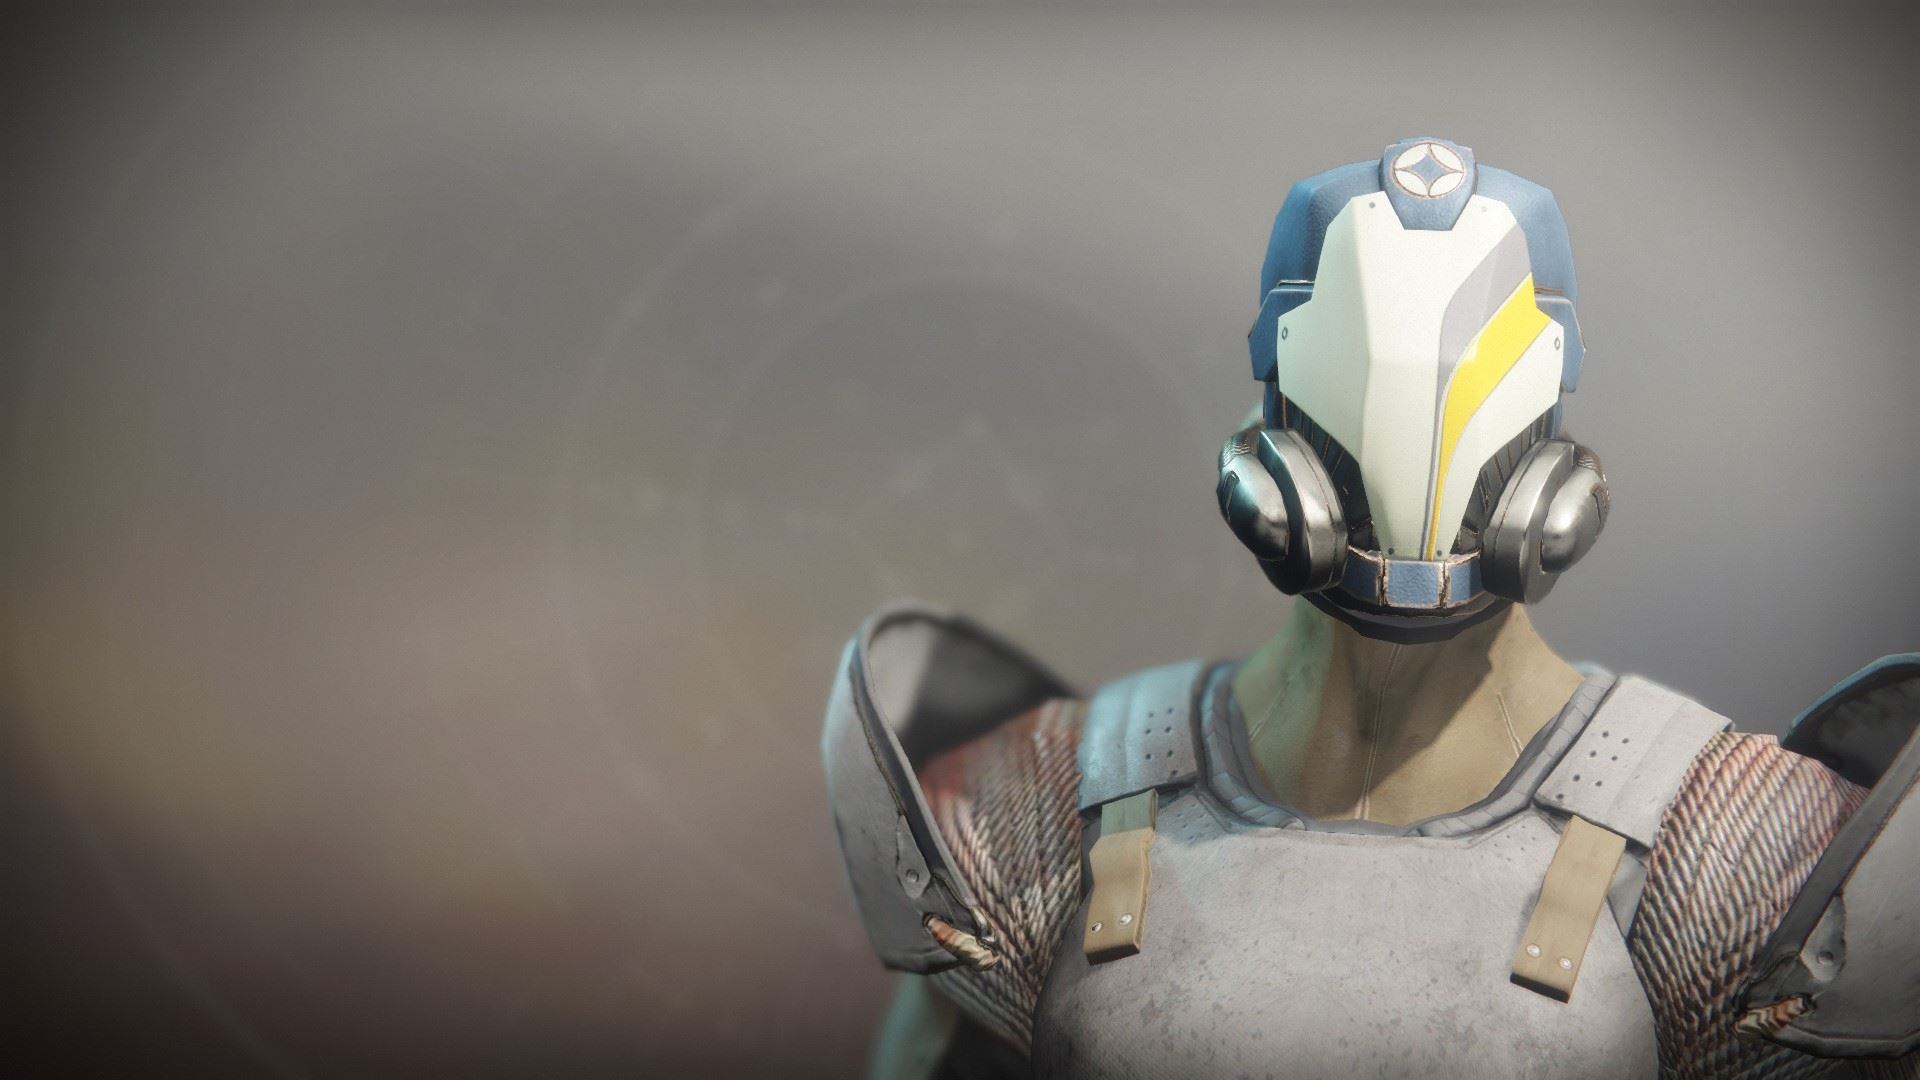 An in-game render of the BrayTech Sn0Helm.